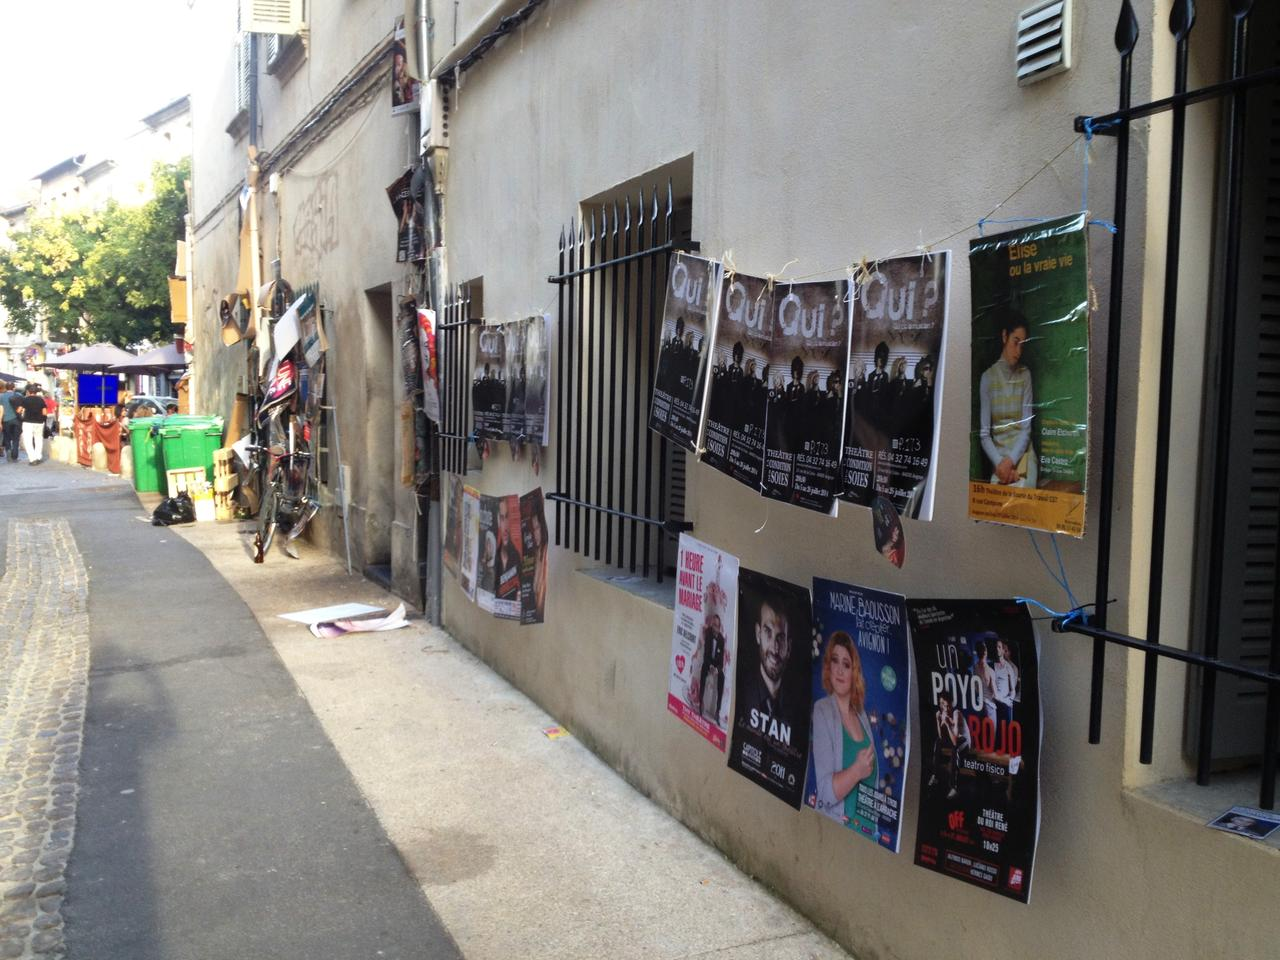 affichage festival avignon 2014 039 avignon publicit. Black Bedroom Furniture Sets. Home Design Ideas